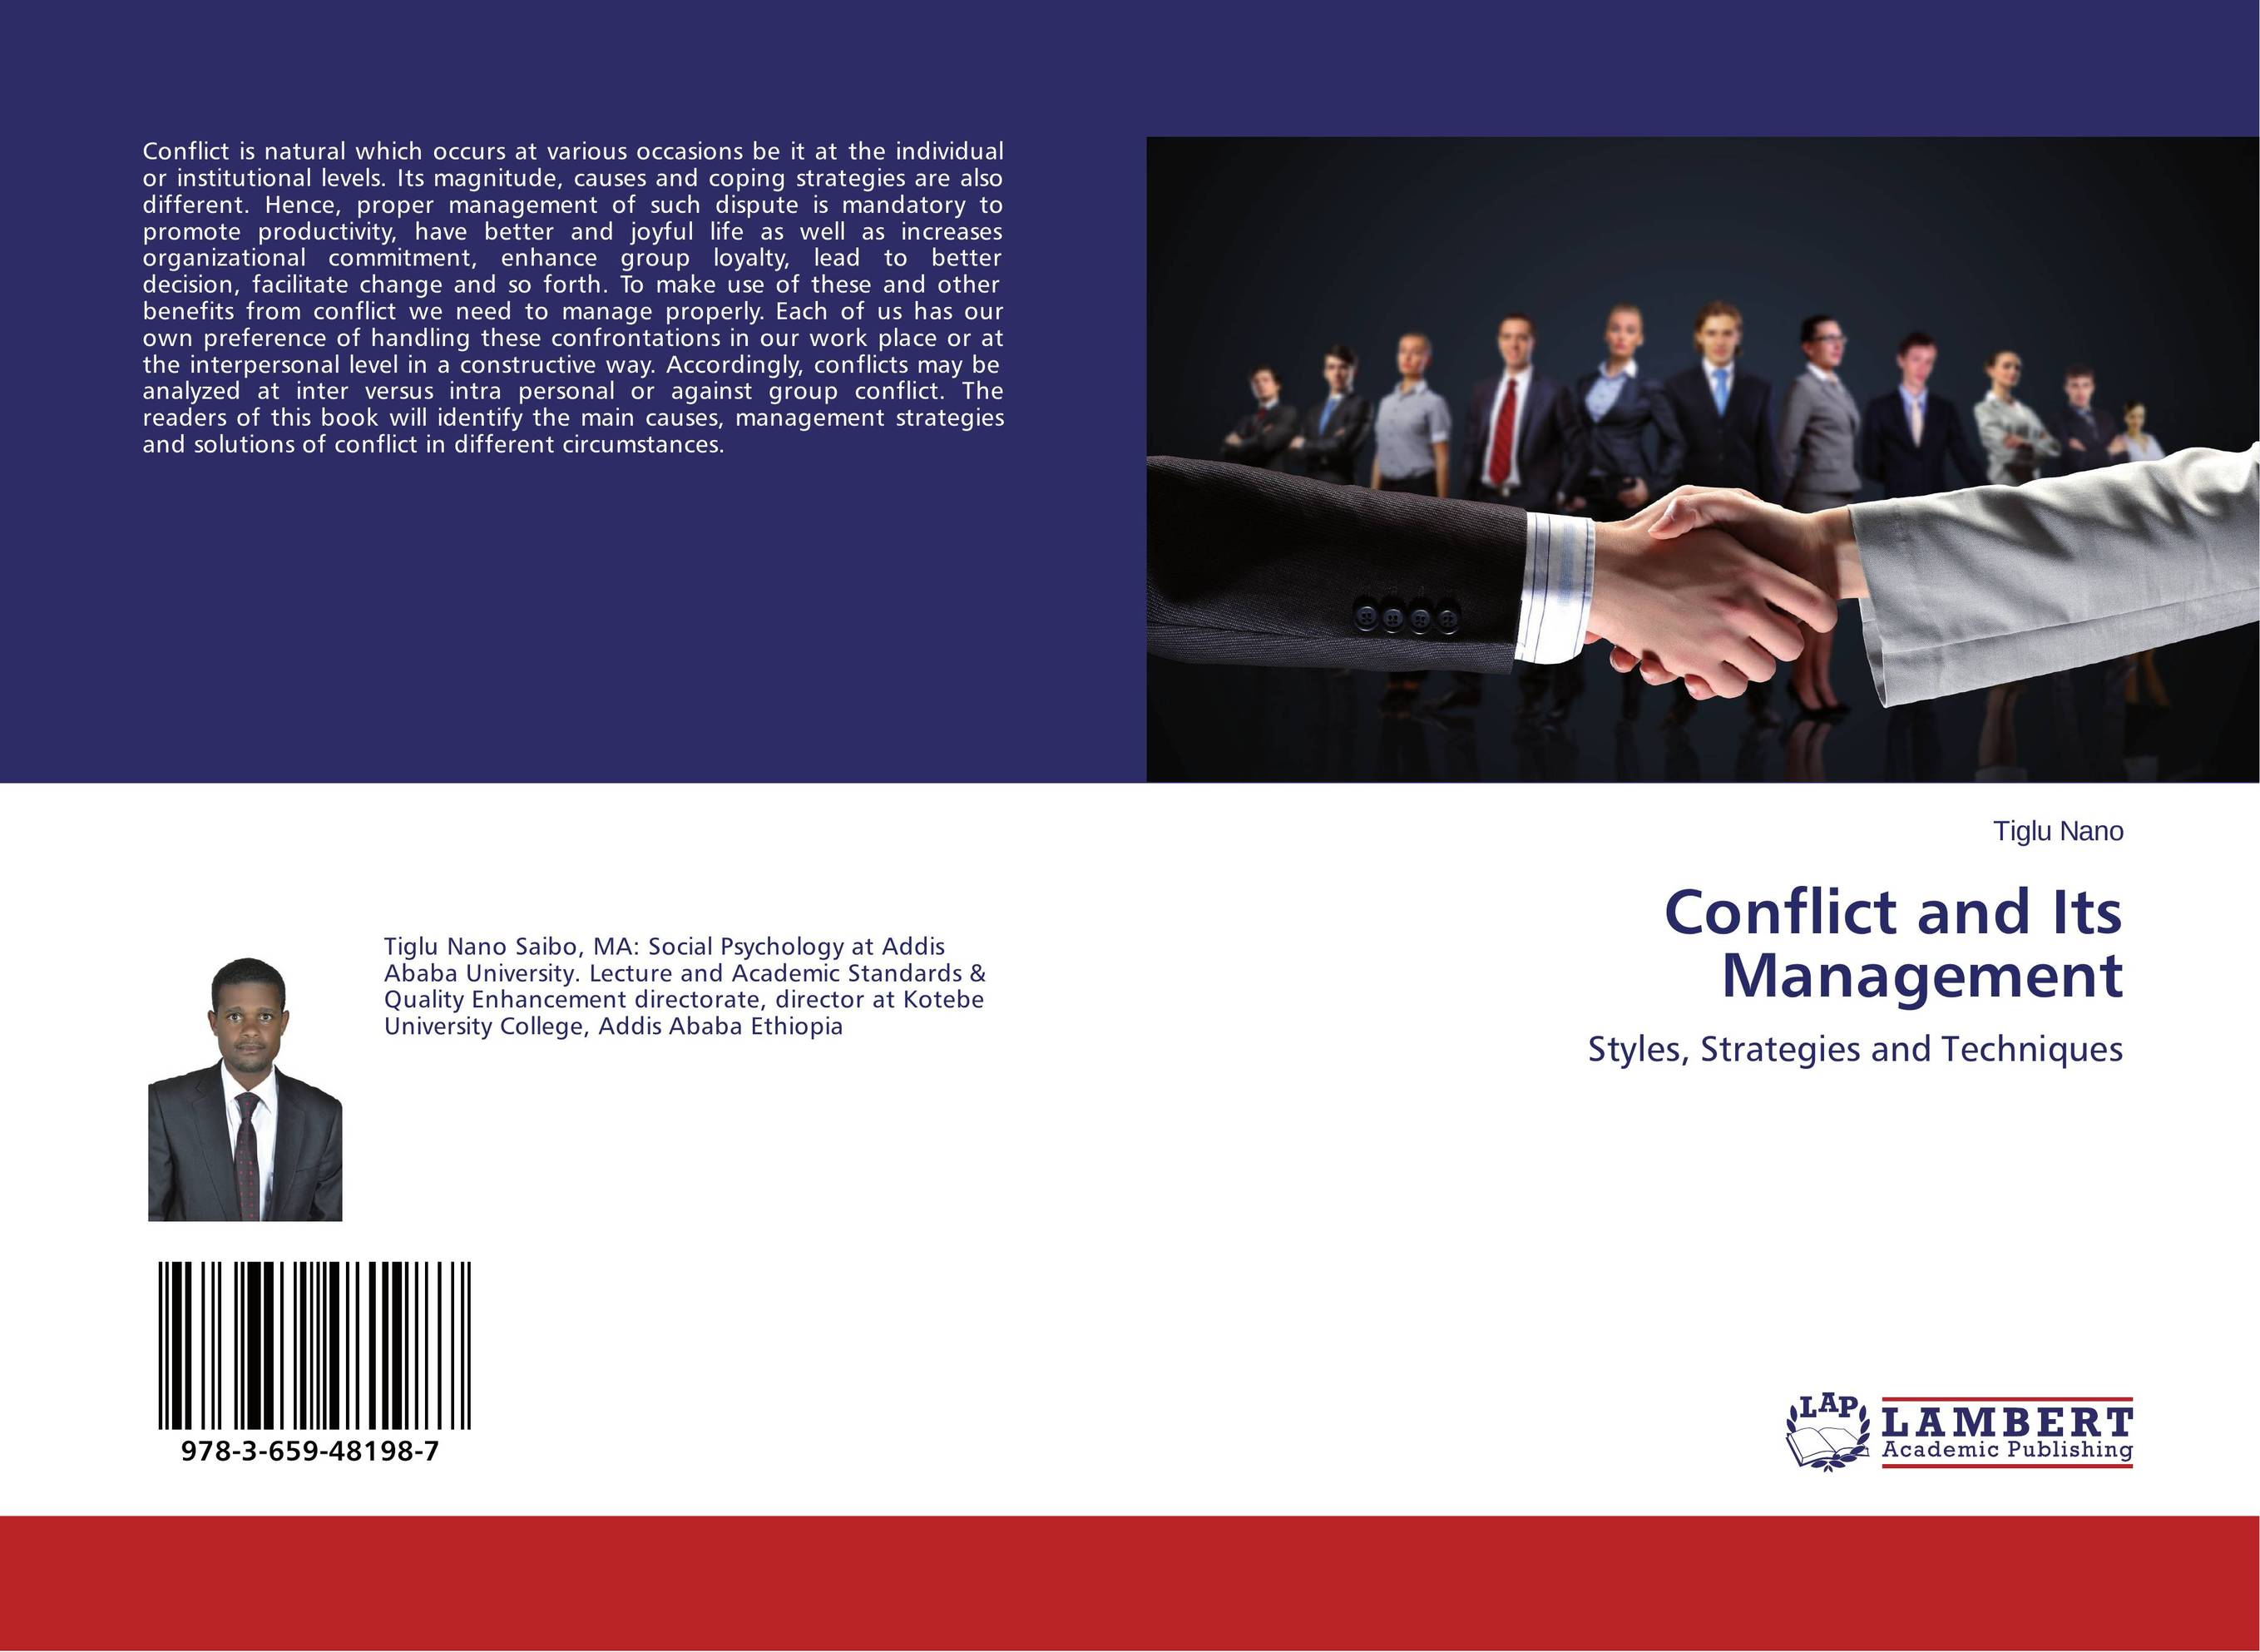 improving management styles The key to being an effective leader is to have a broad repertoire of styles and to use them appropriately - 6 management styles and when best to use them.